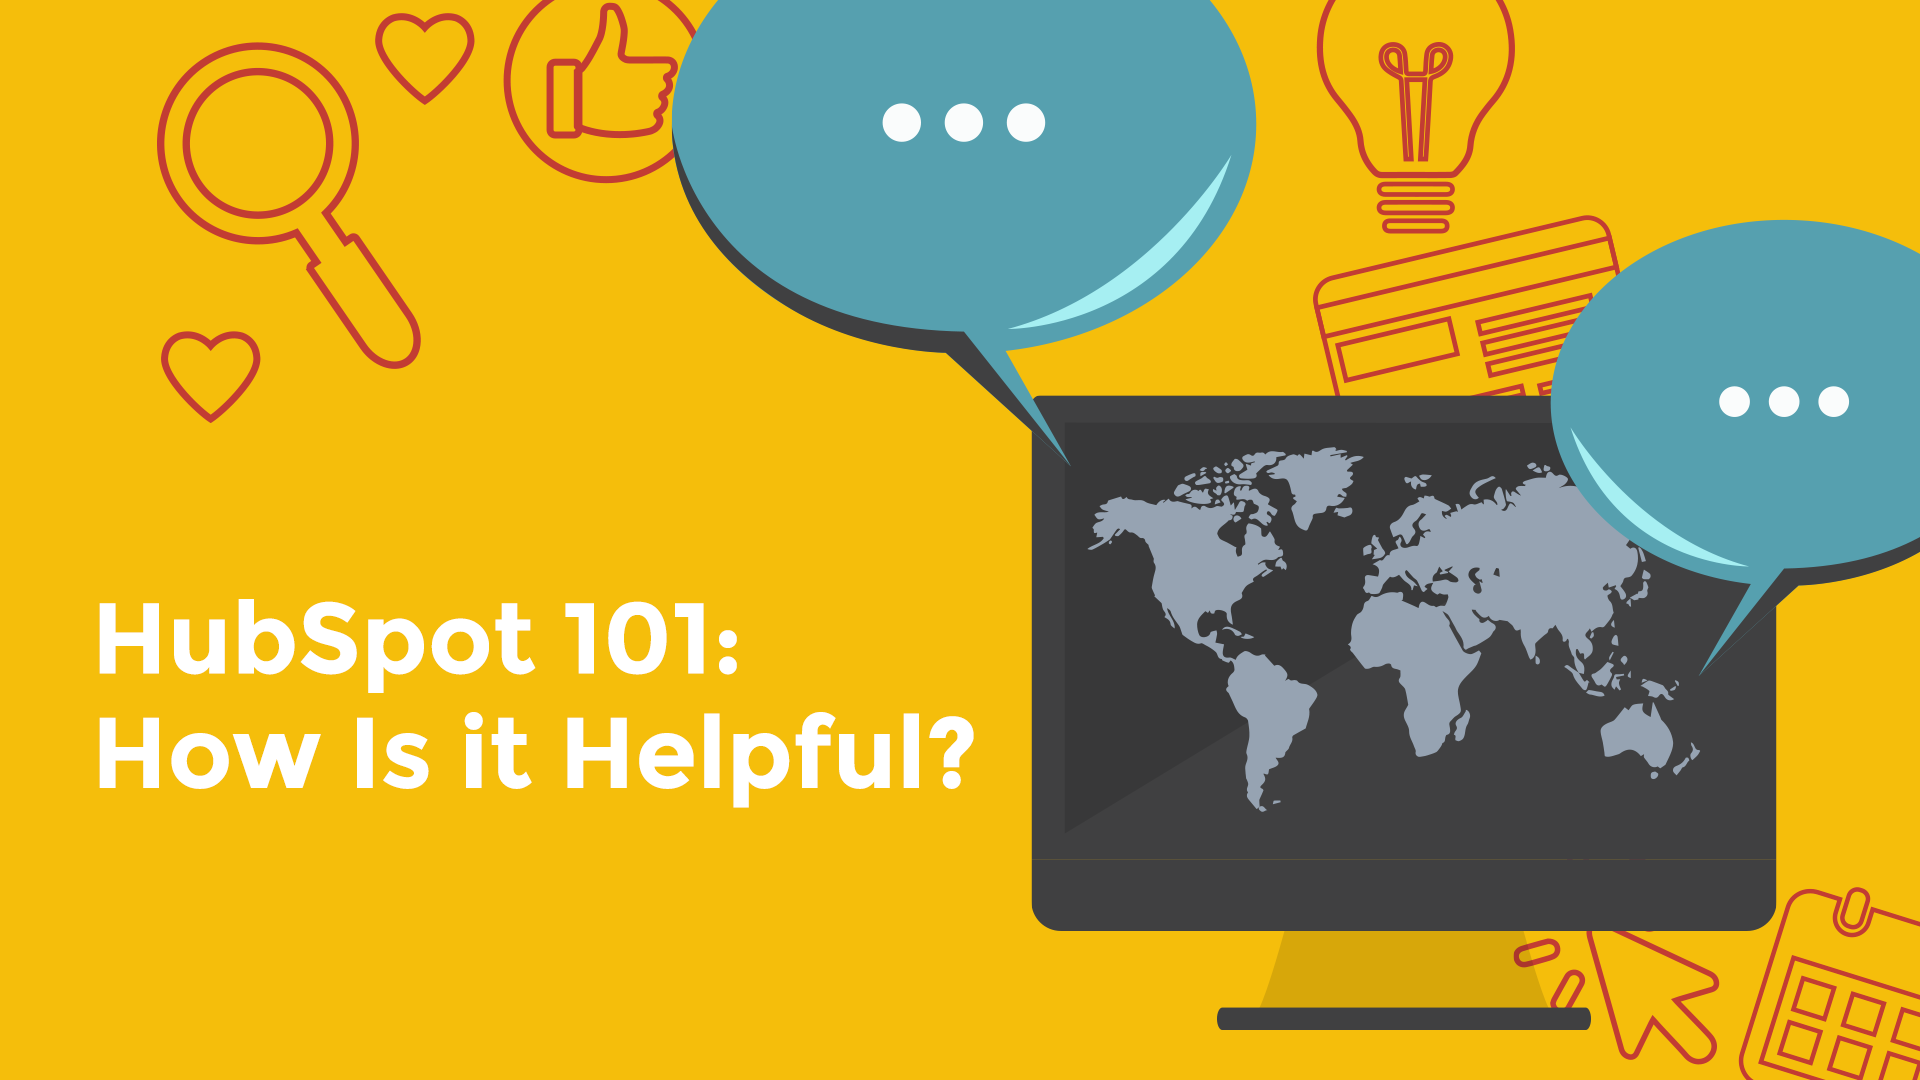 Hubspot 101: How Is It Helpful? Featured Image